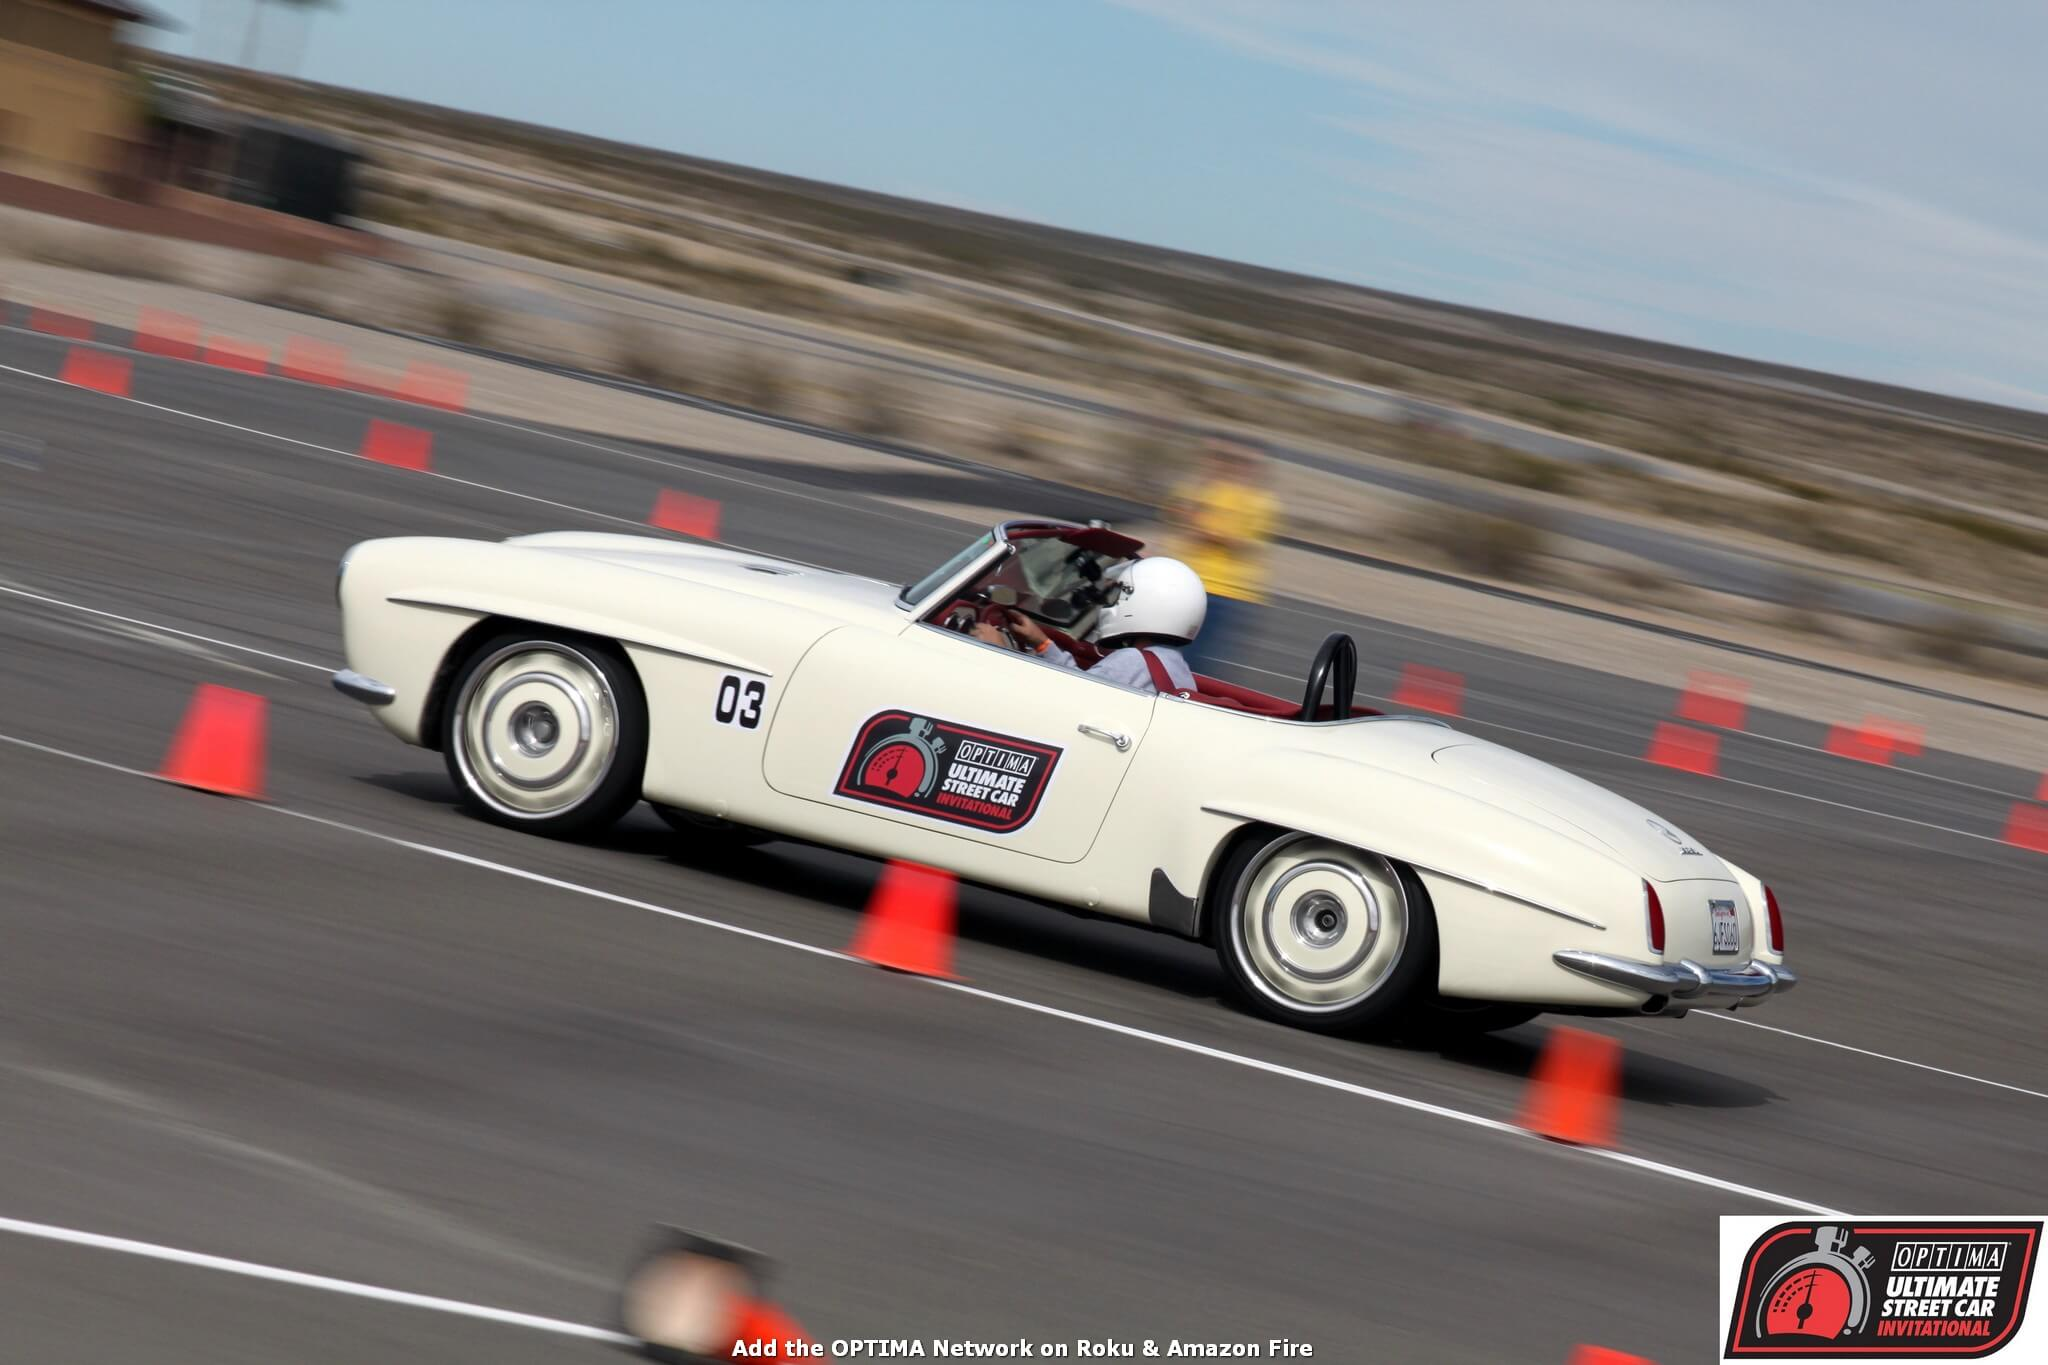 p-Sean-Dell-1961-Mercedes-Benz-190SL-OUSCI-2010_1